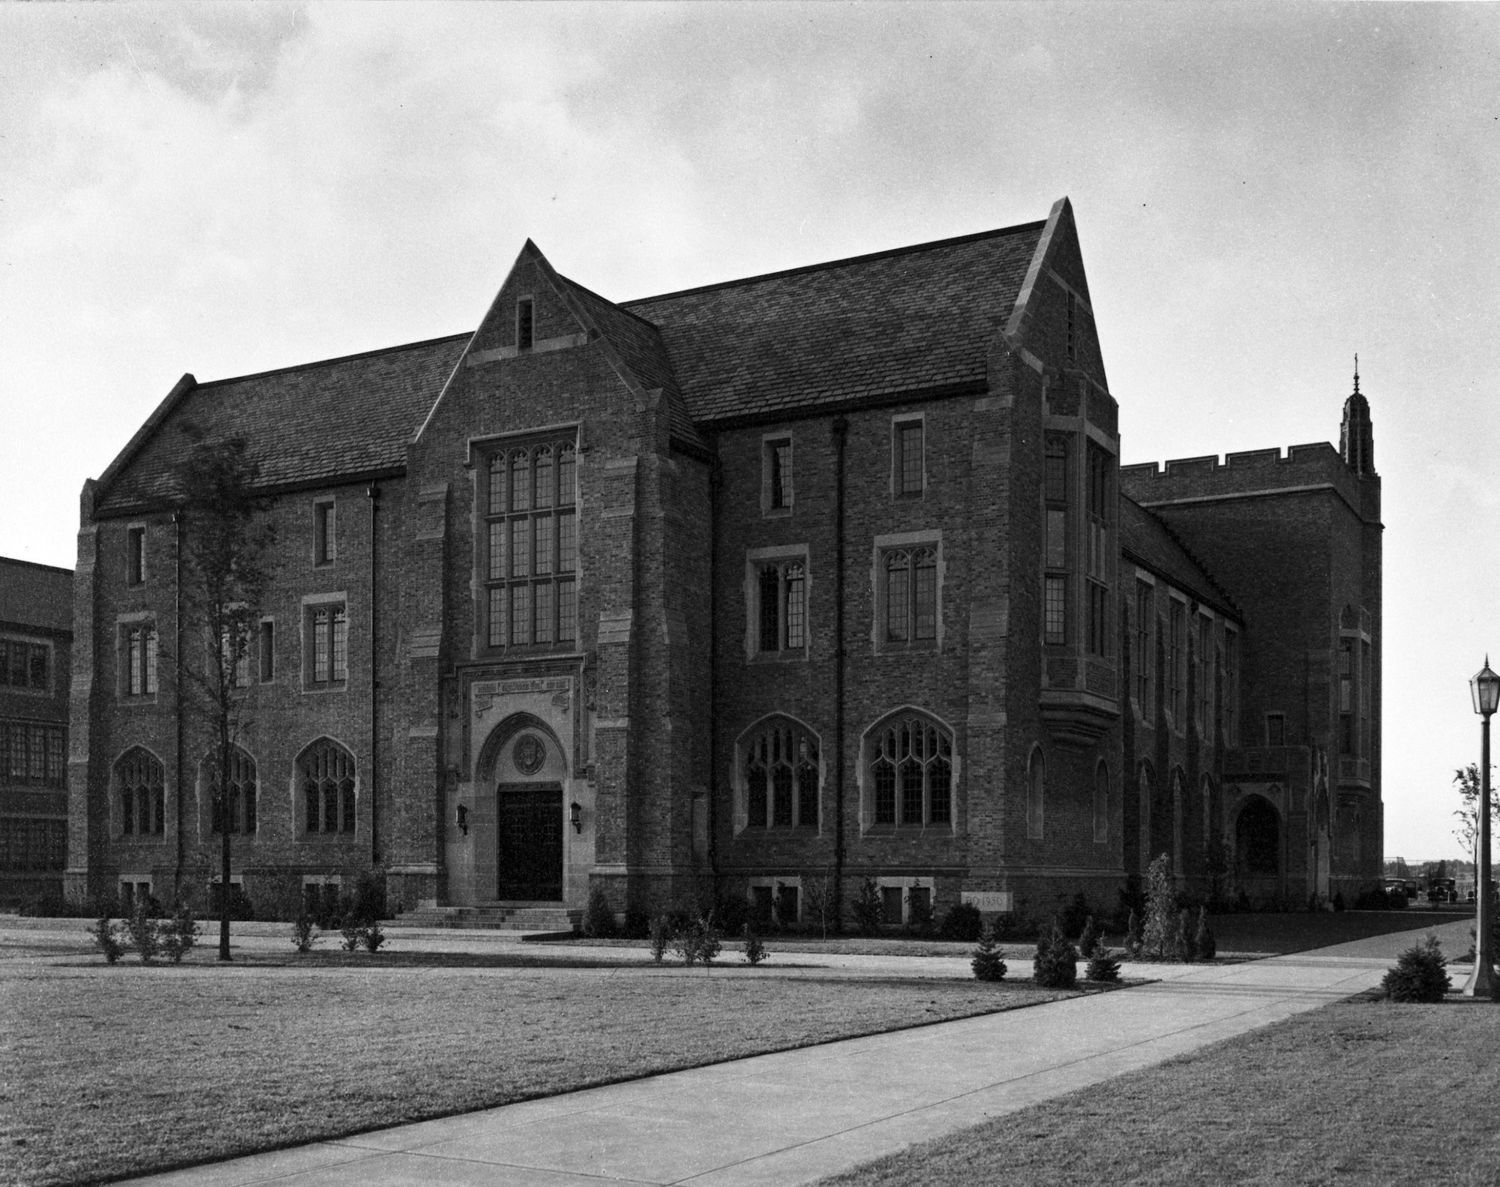 Original Law School Building